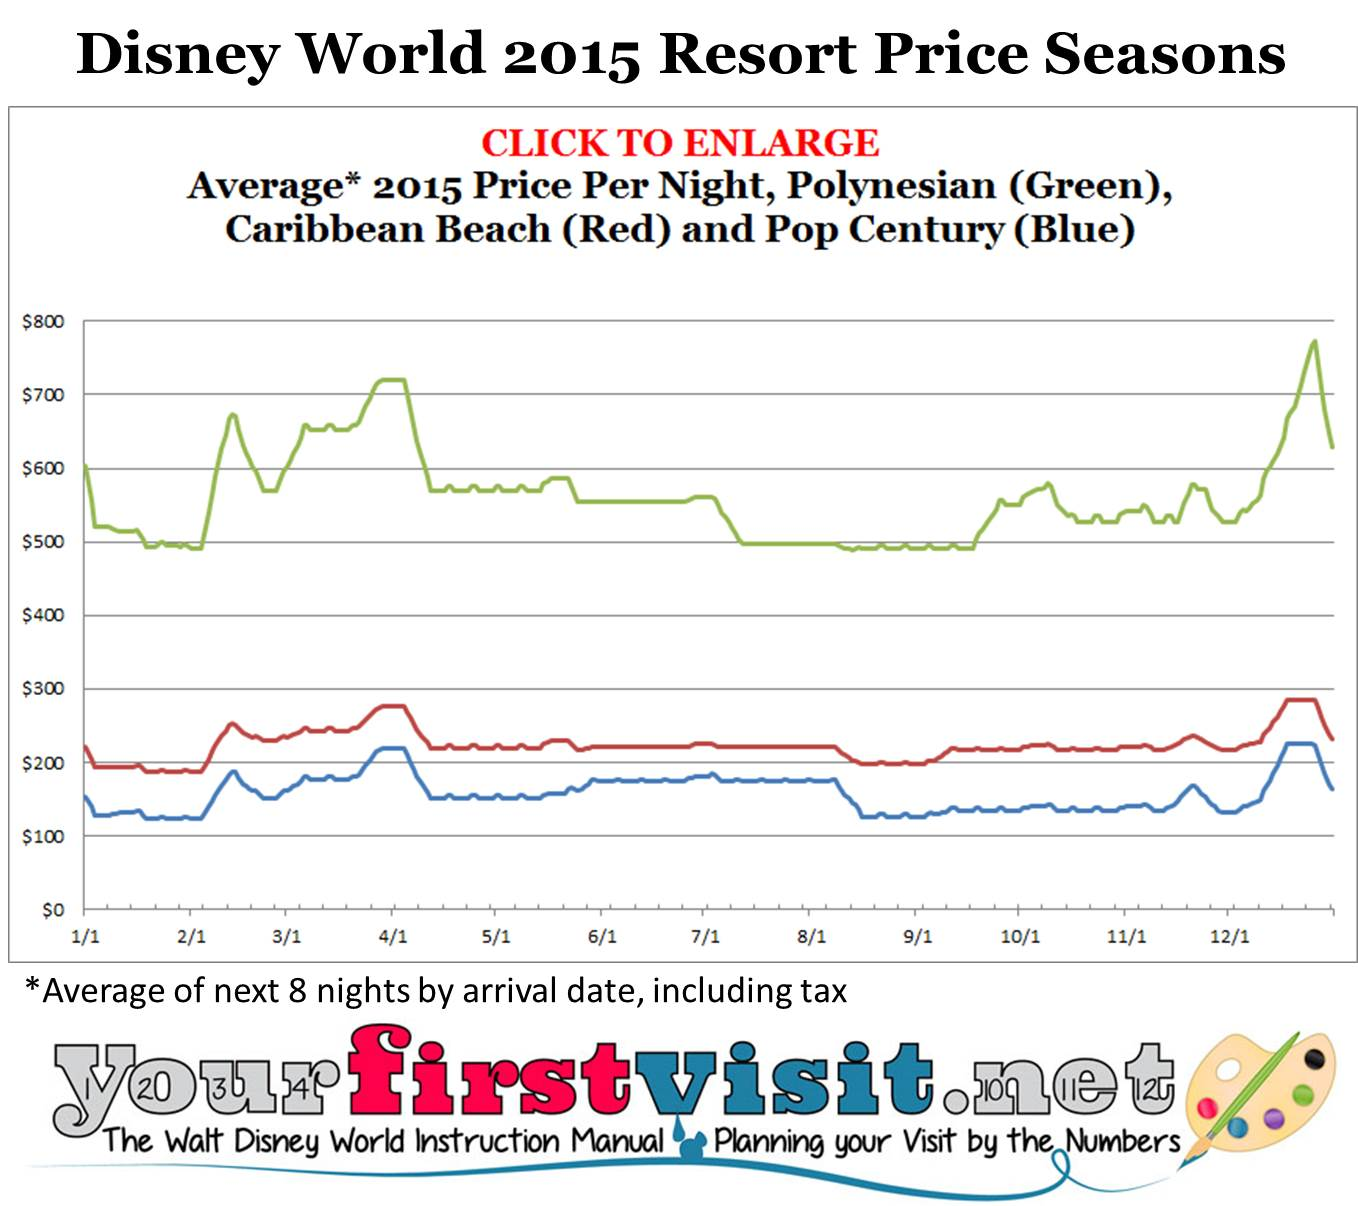 Disney World 2015 Resort Price Seasons from yourfirstvisit.net